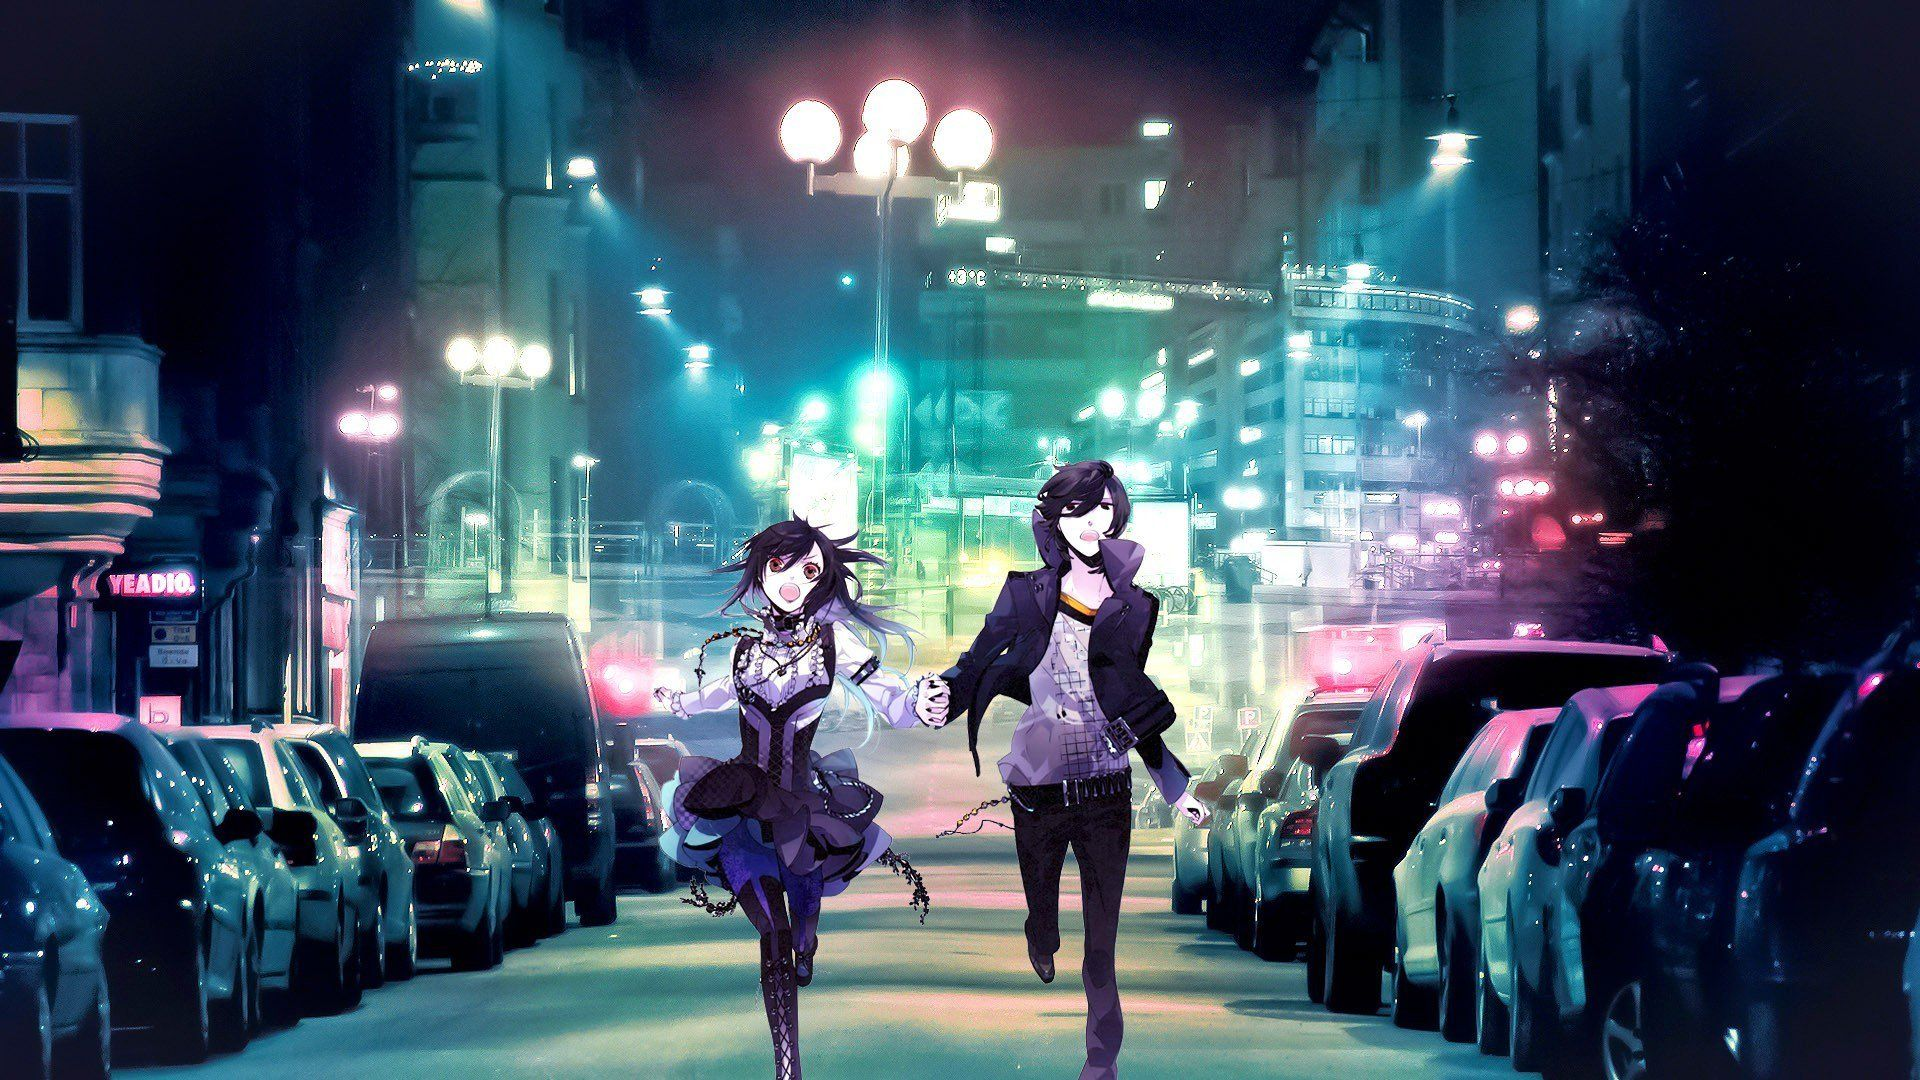 Full HD P Anime Wallpapers Desktop Backgrounds Pictures